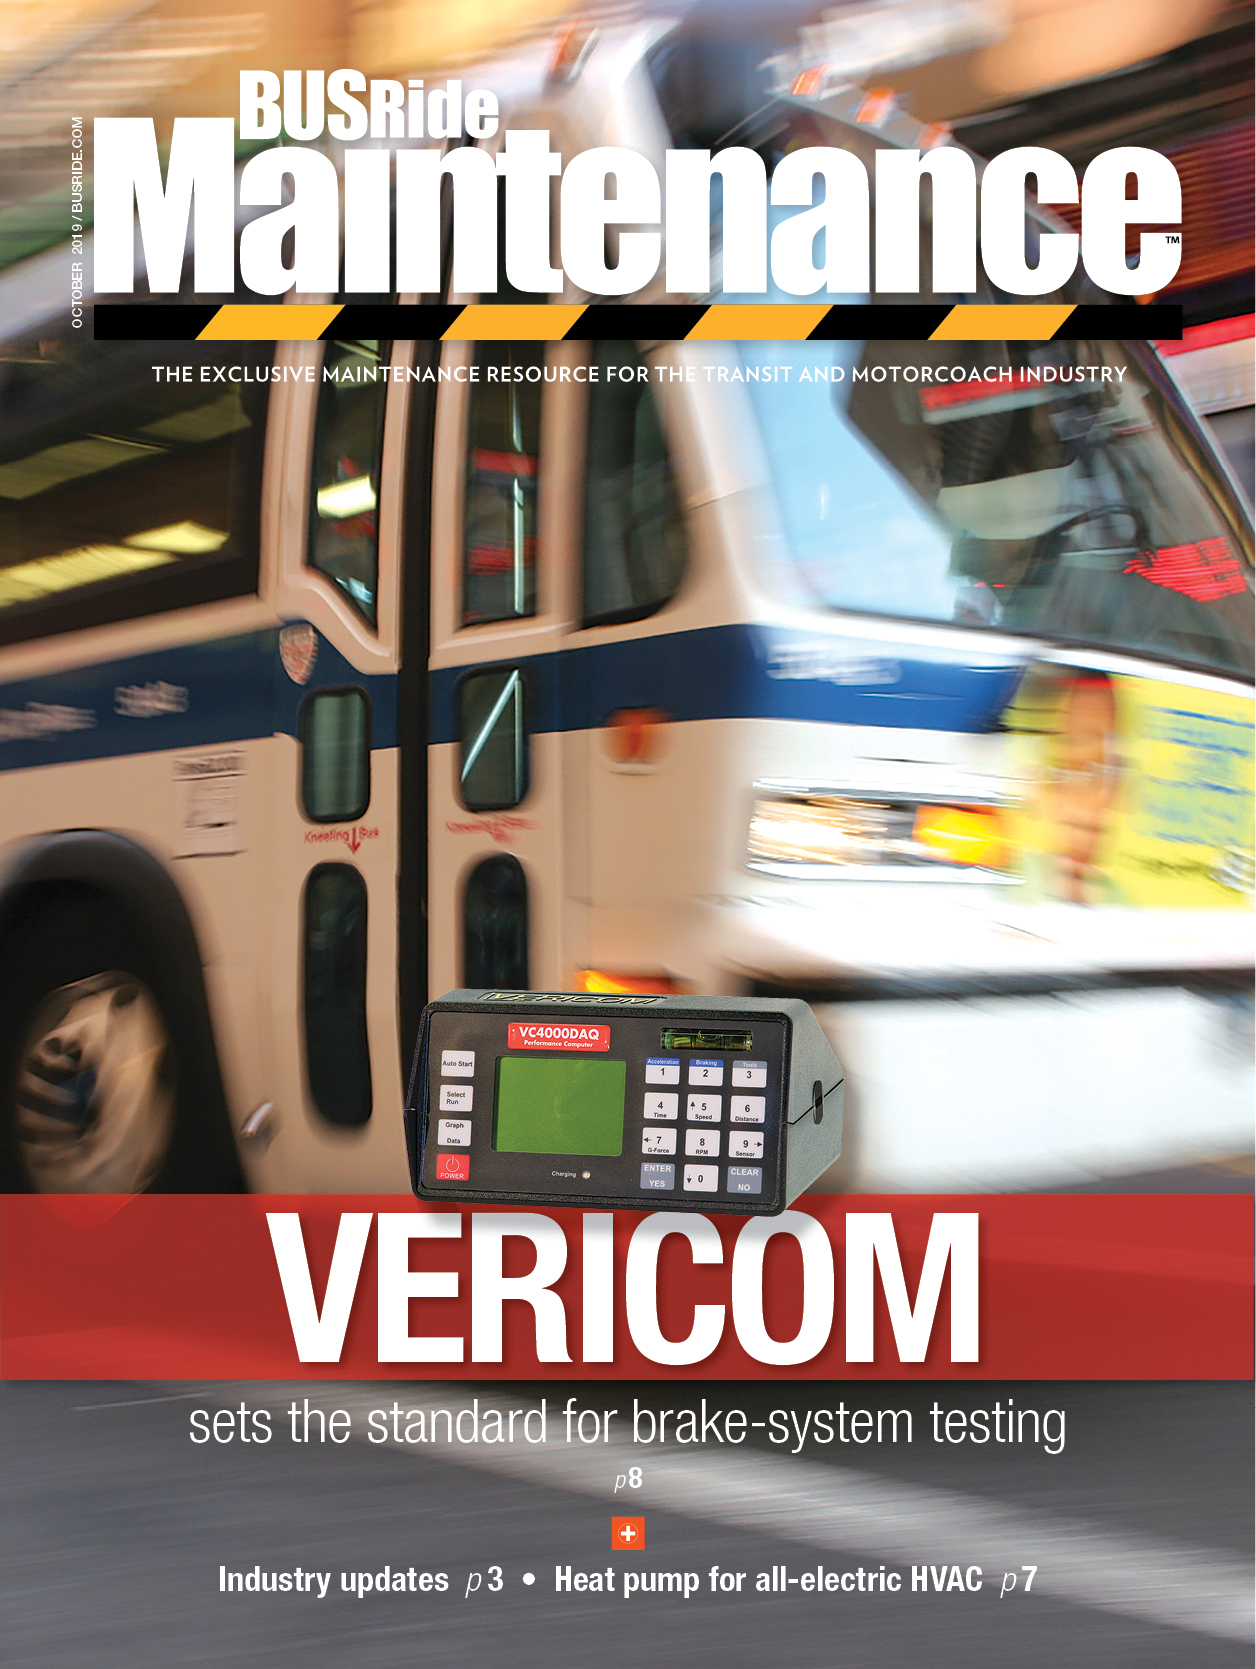 Vericom sets standard for brake-system testing